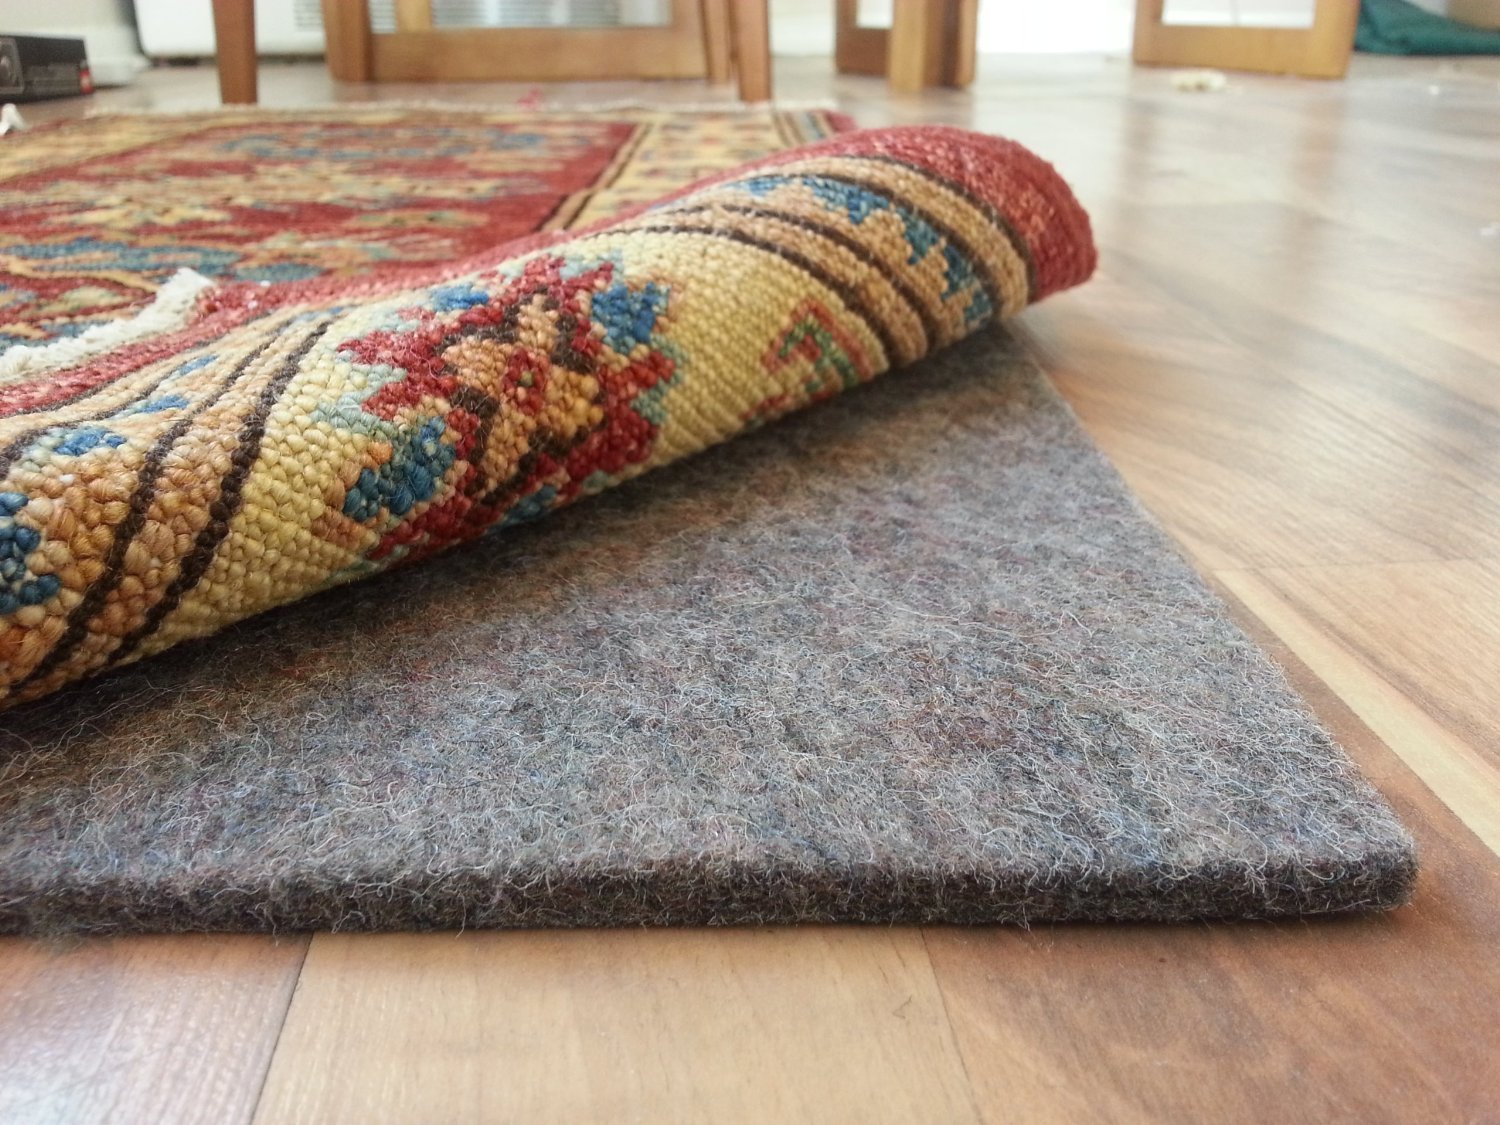 Rug Pads For Hardwood Floors To Prevent Slipping And